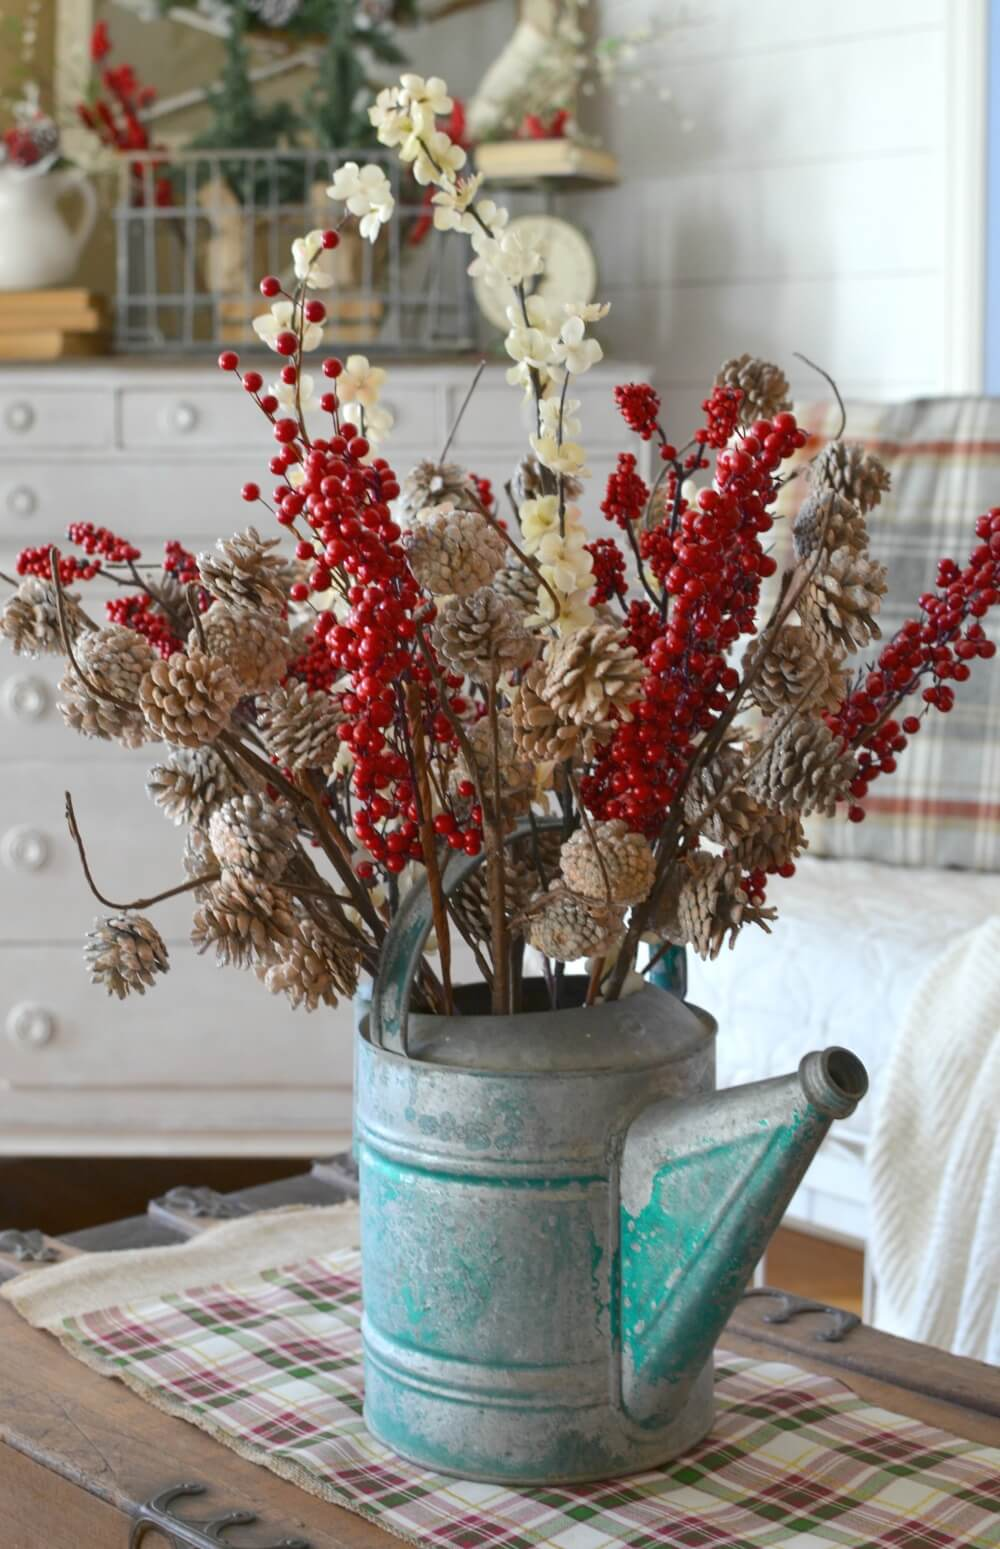 17 winter wonderland with a watering can - Teal And Red Christmas Decorations